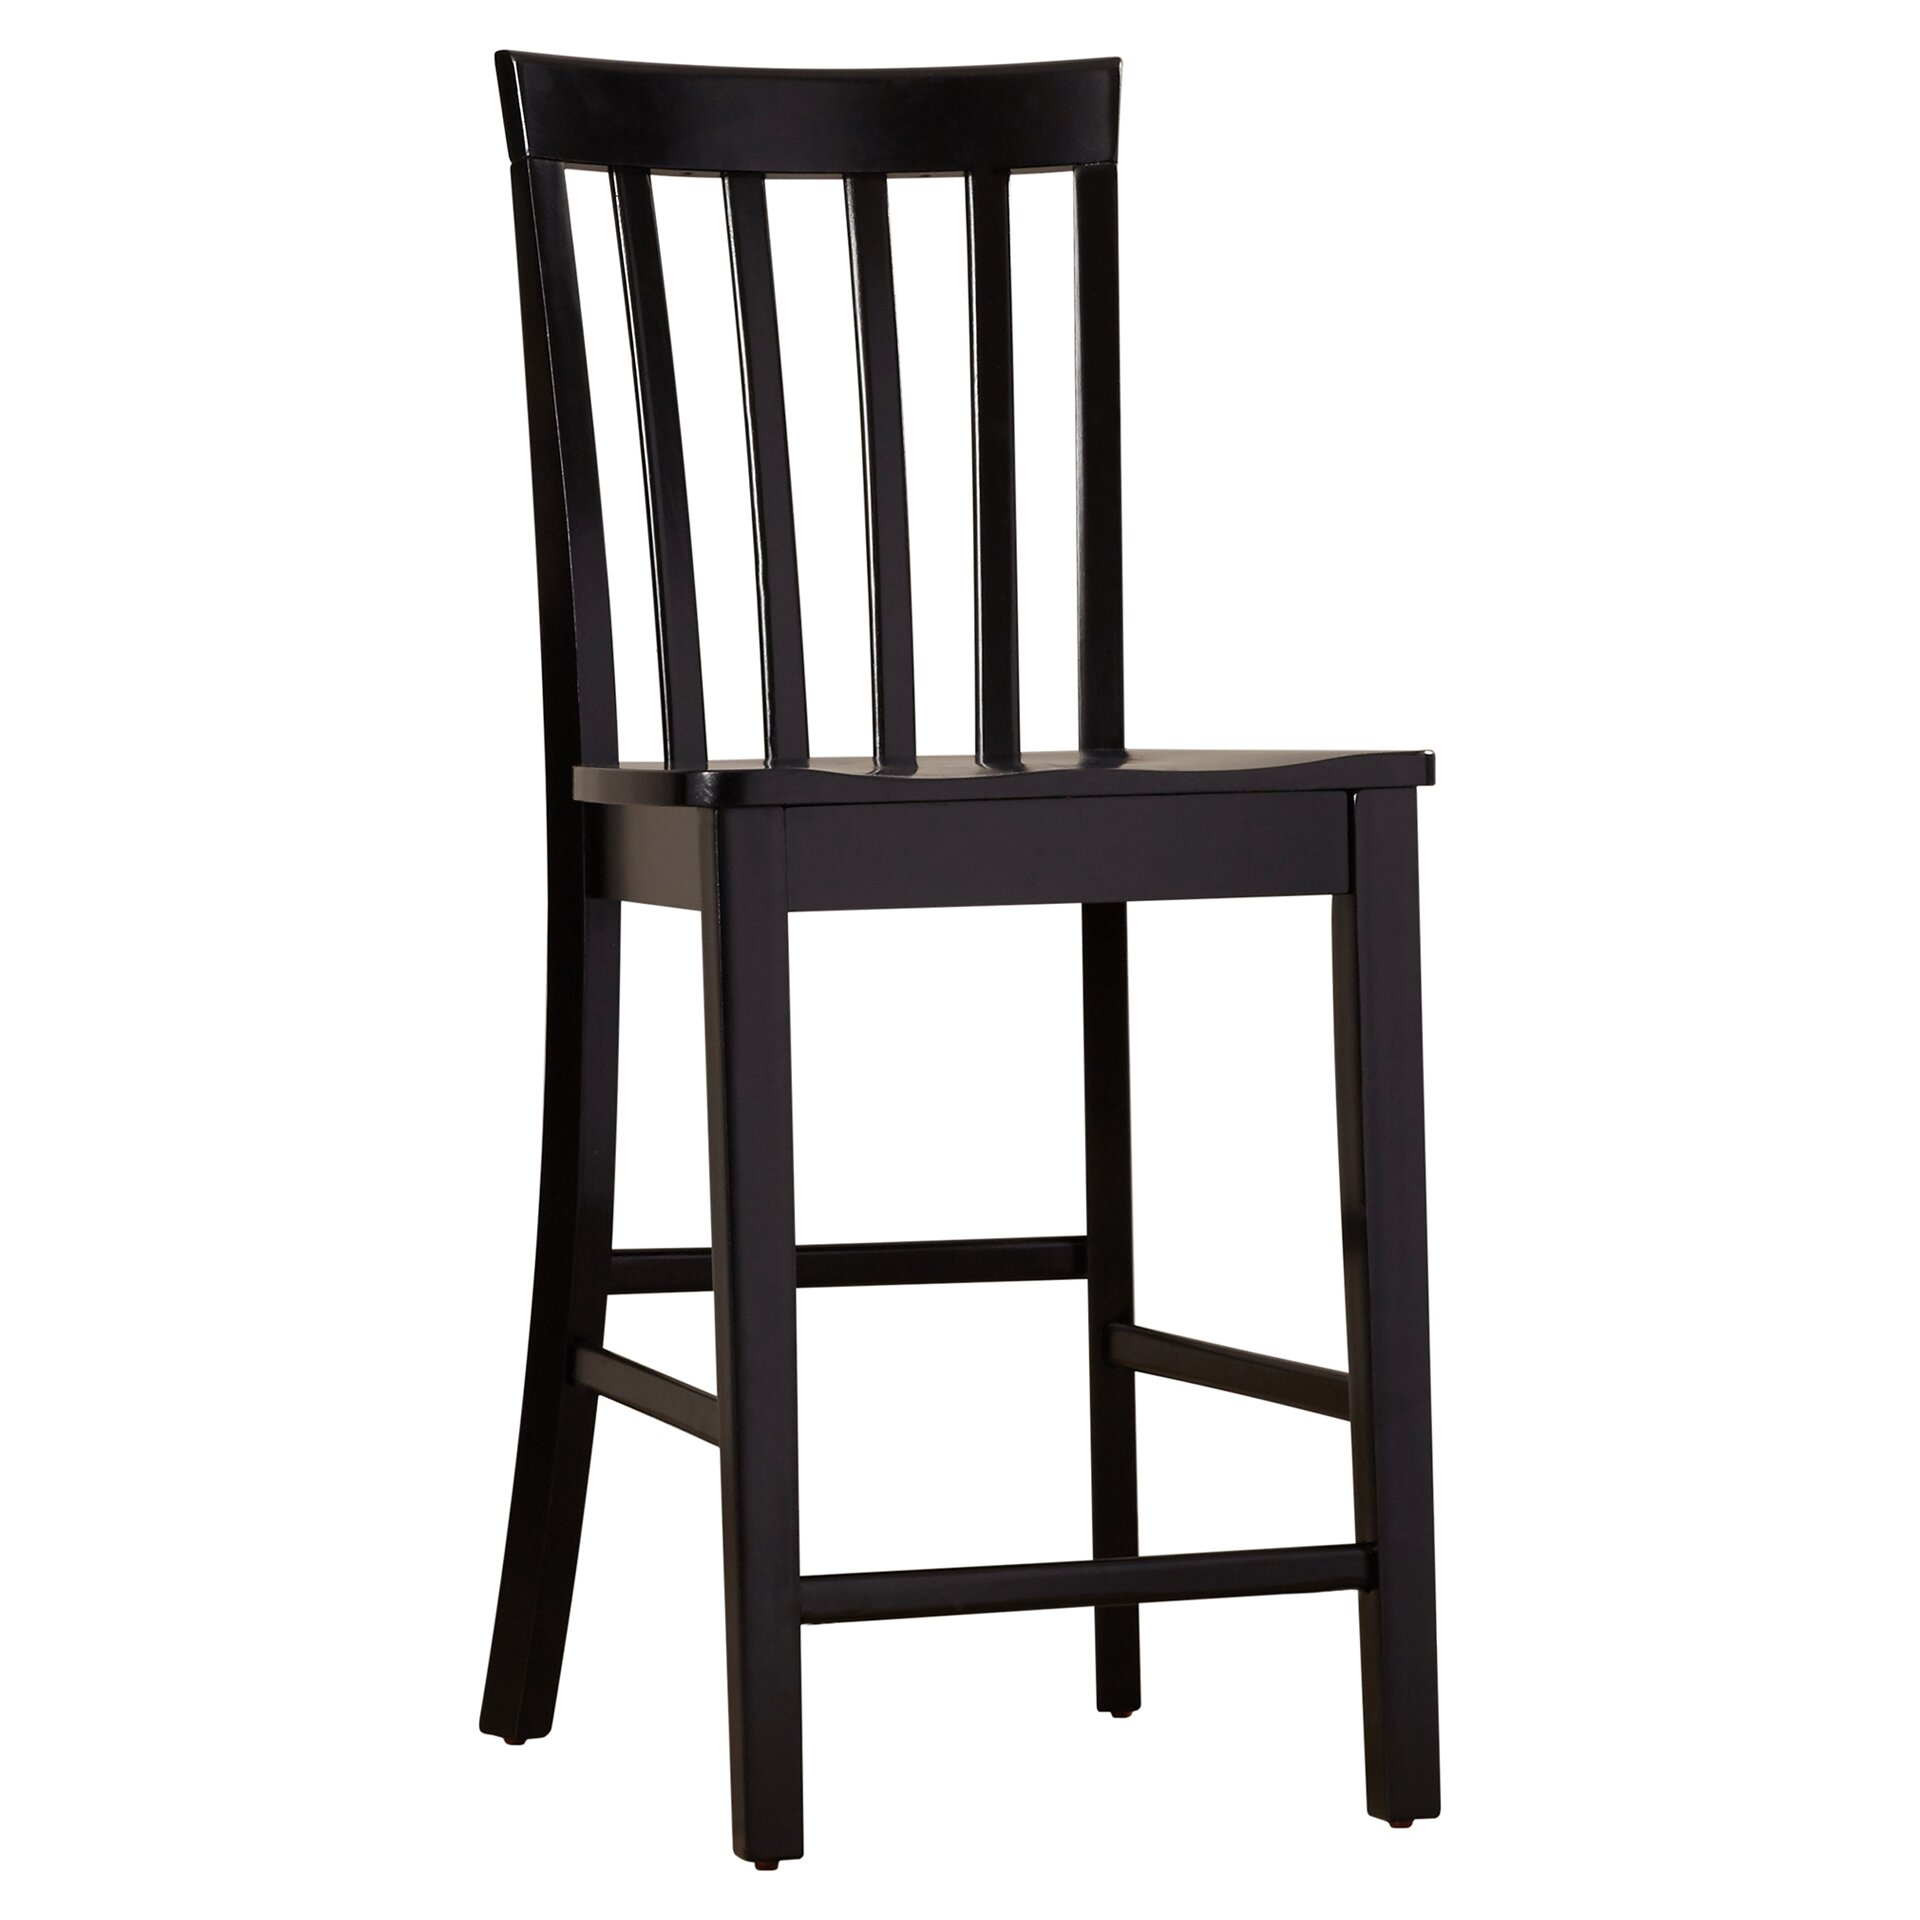 Darby home co 24 bar stool reviews wayfair for 24 bar stools